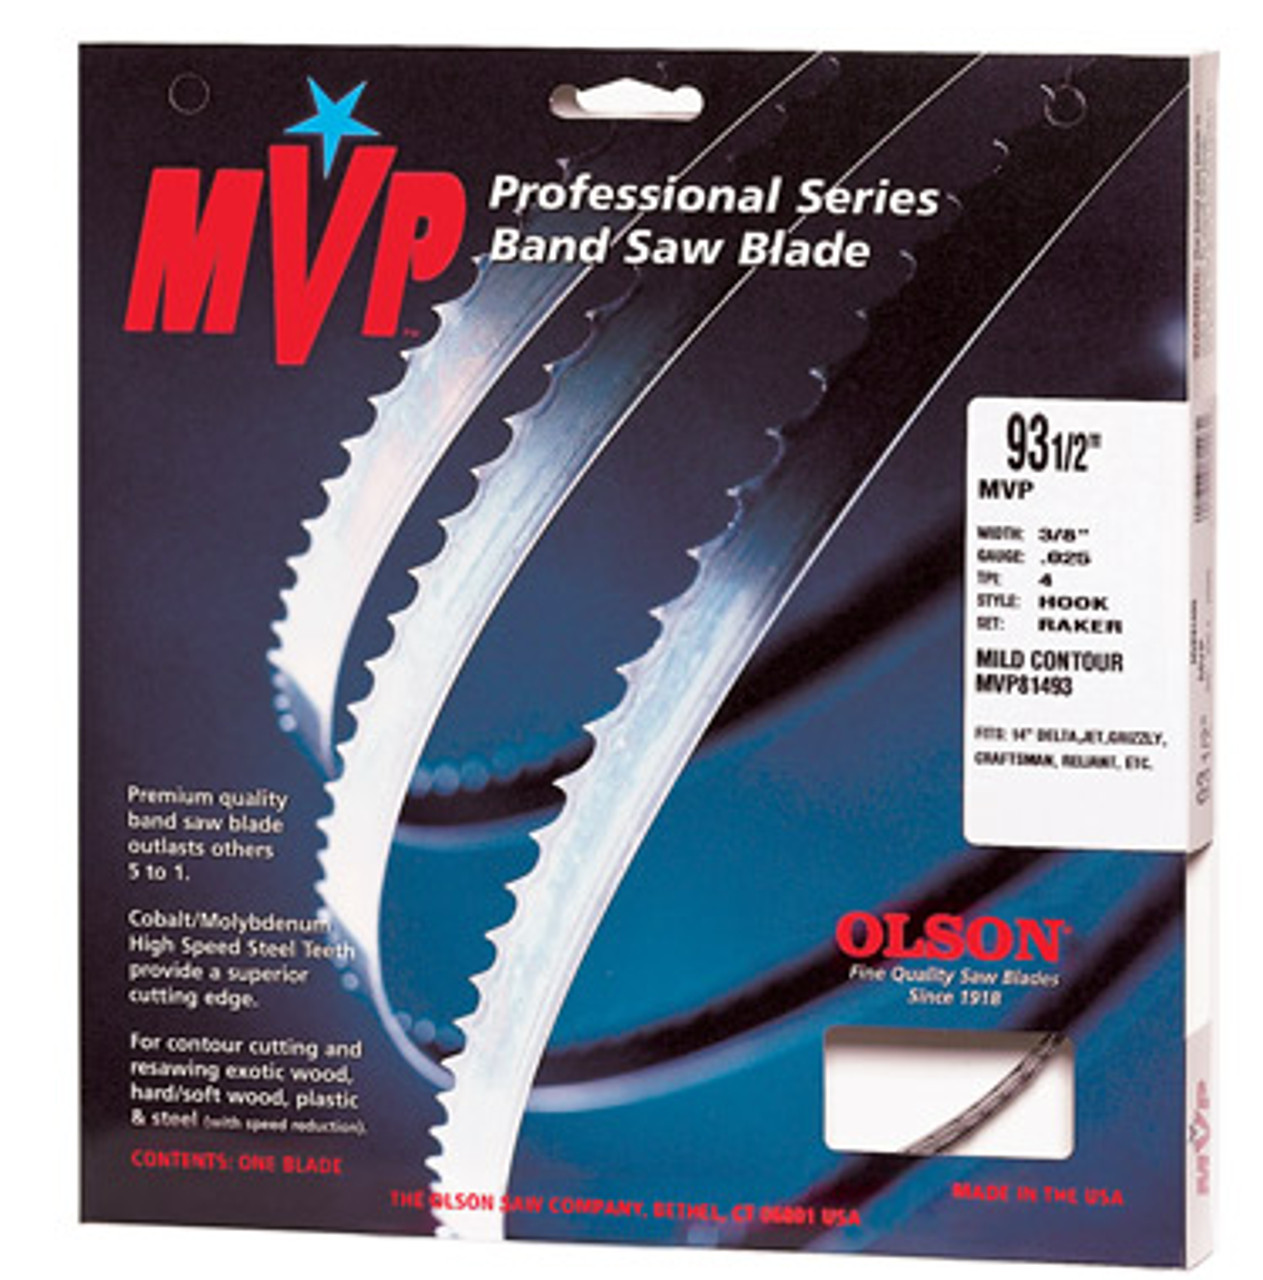 Olson MVP Band Saw Blades shown in original package.